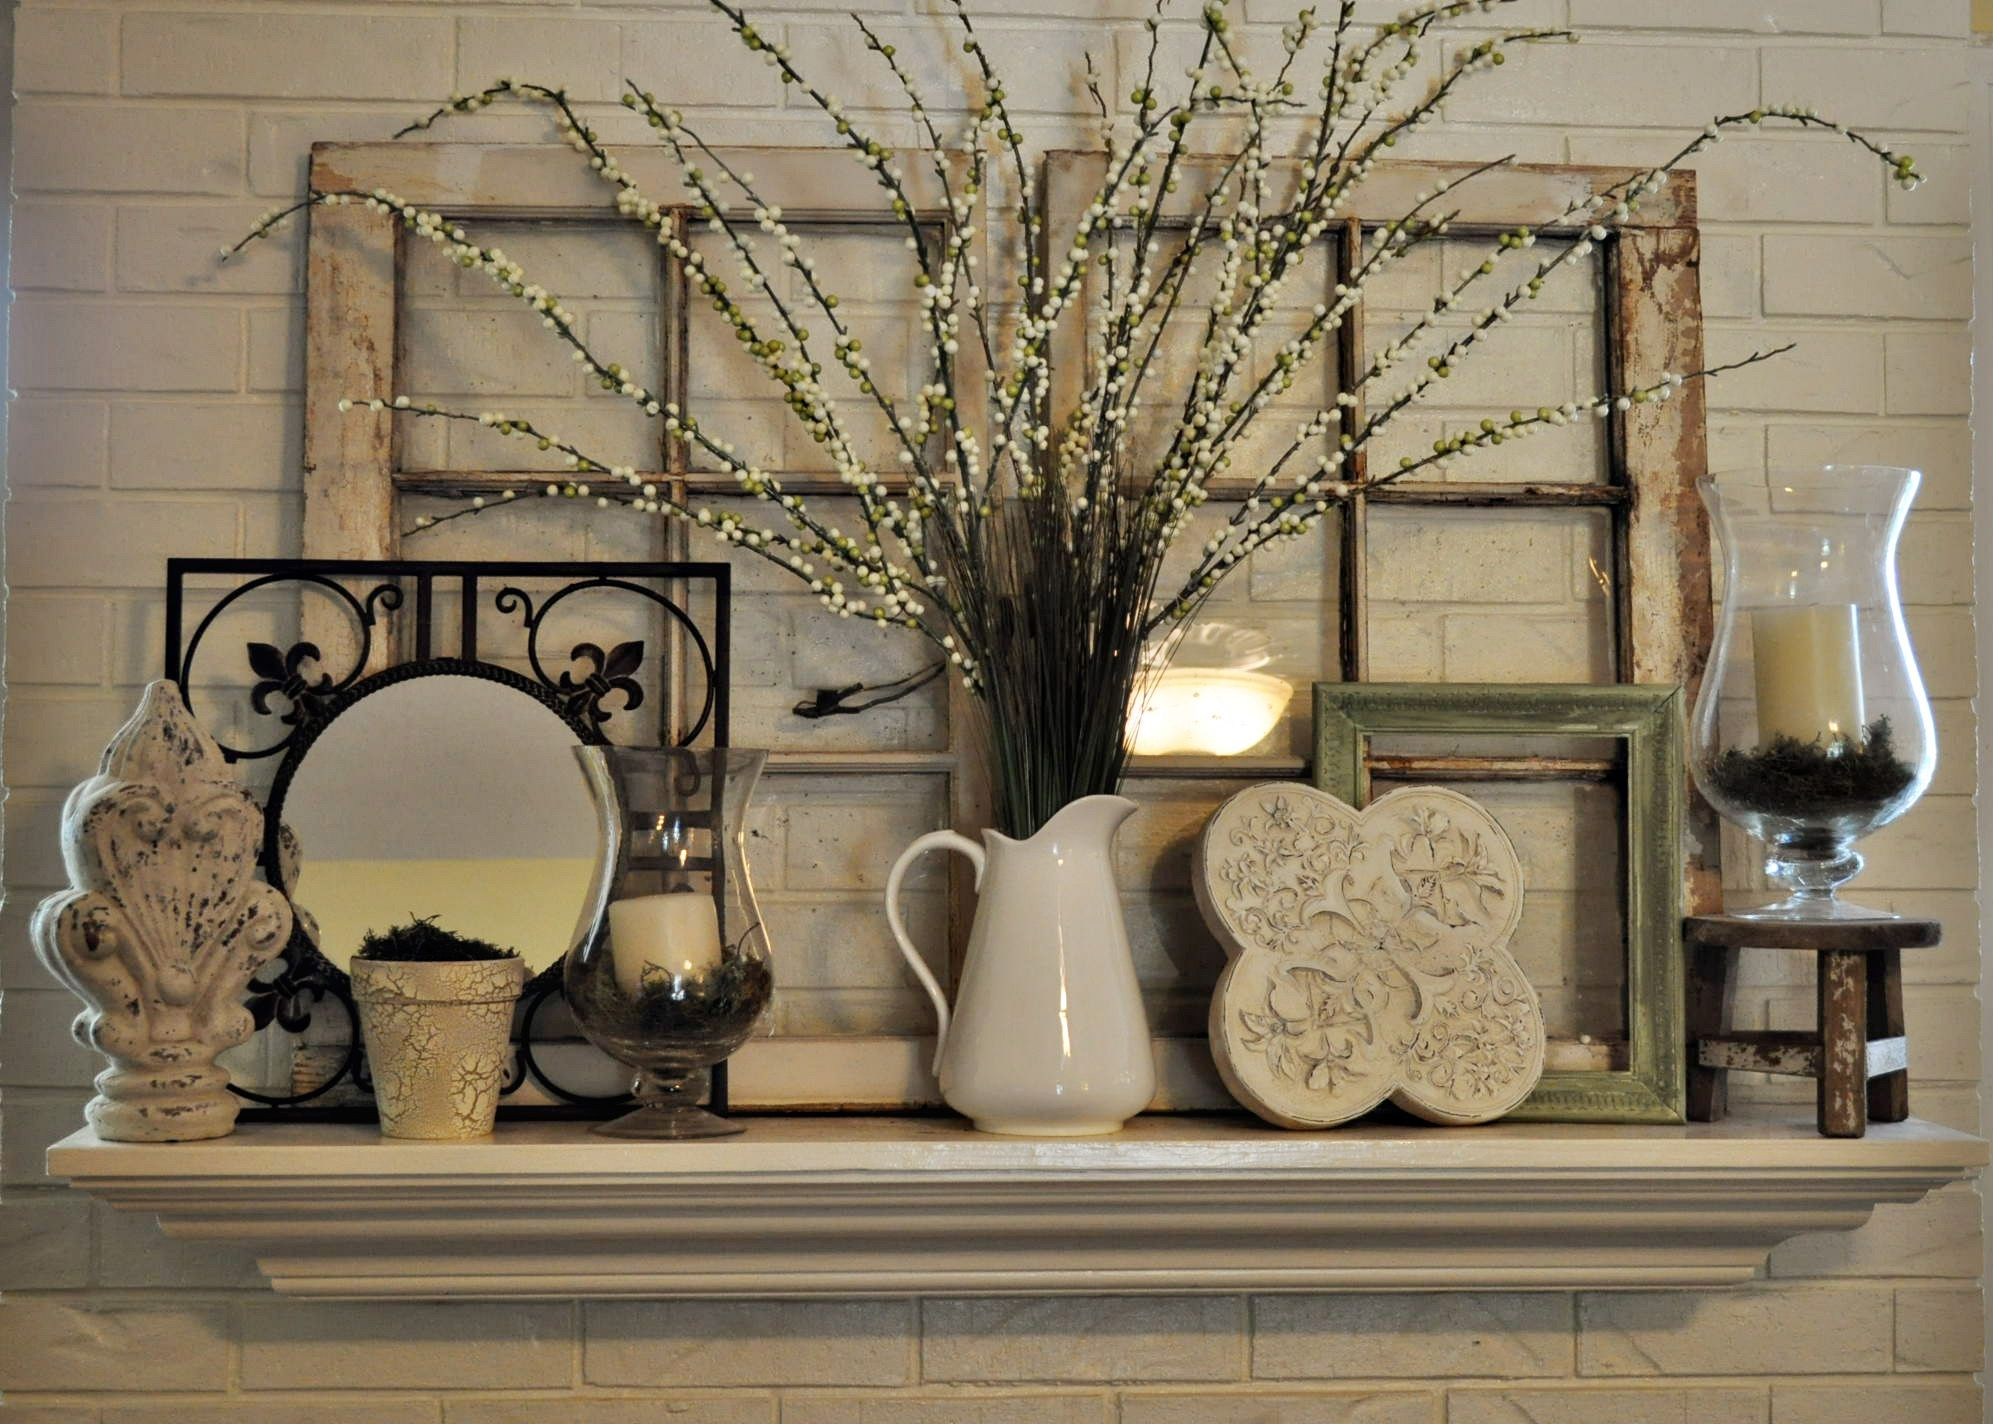 Mantelpiece Ideas Decorating A Mantel Or Shelf Decor In 2019 Home Decor